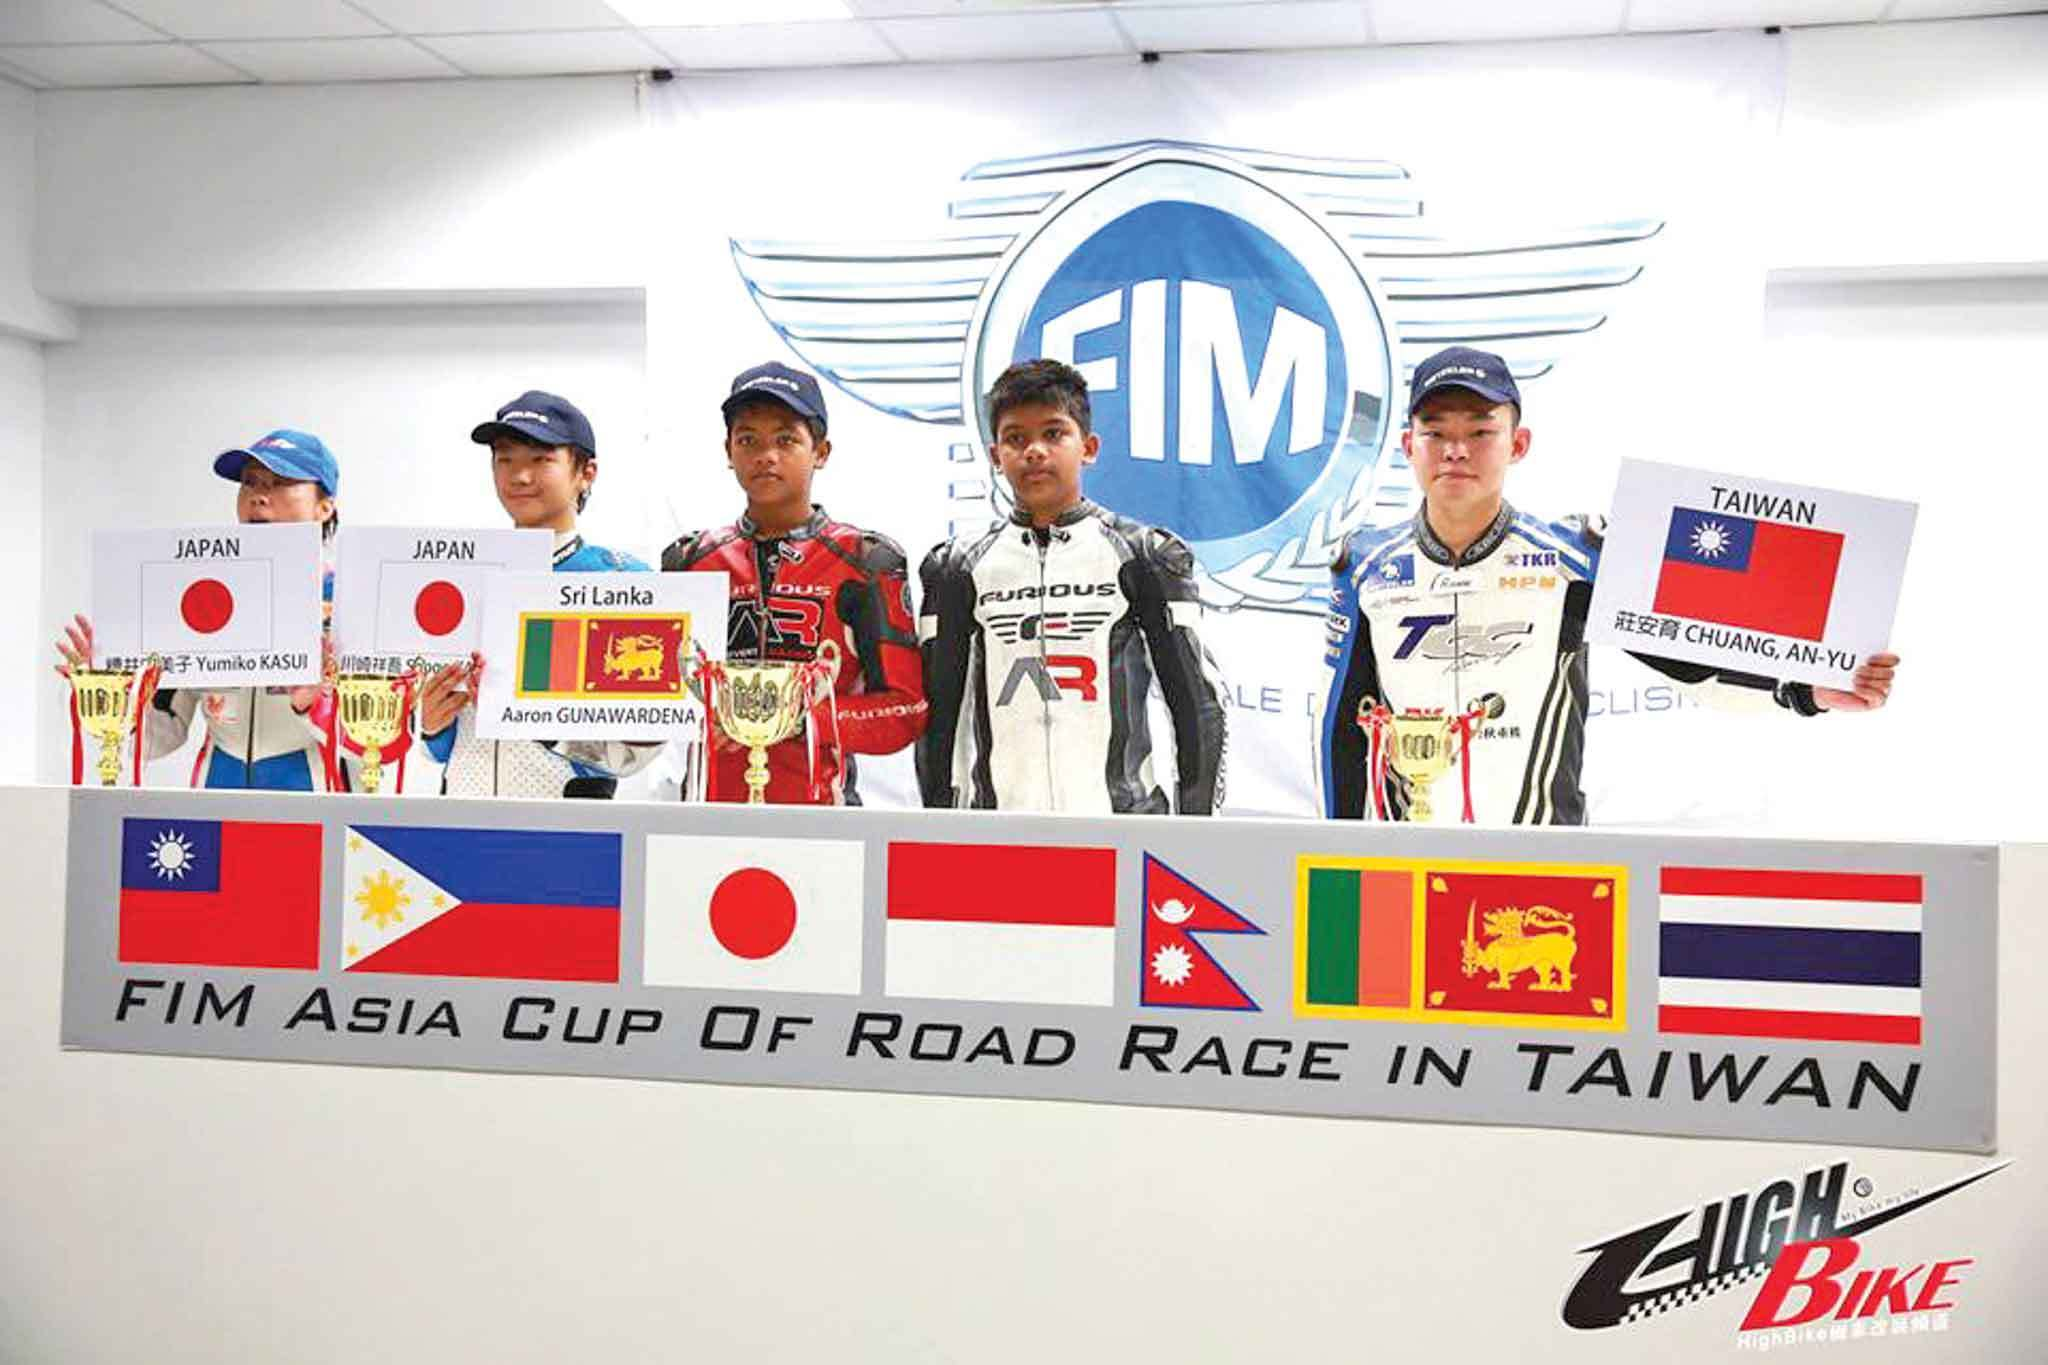 Q: You mentioned International Racing. Where have the boys taken part?